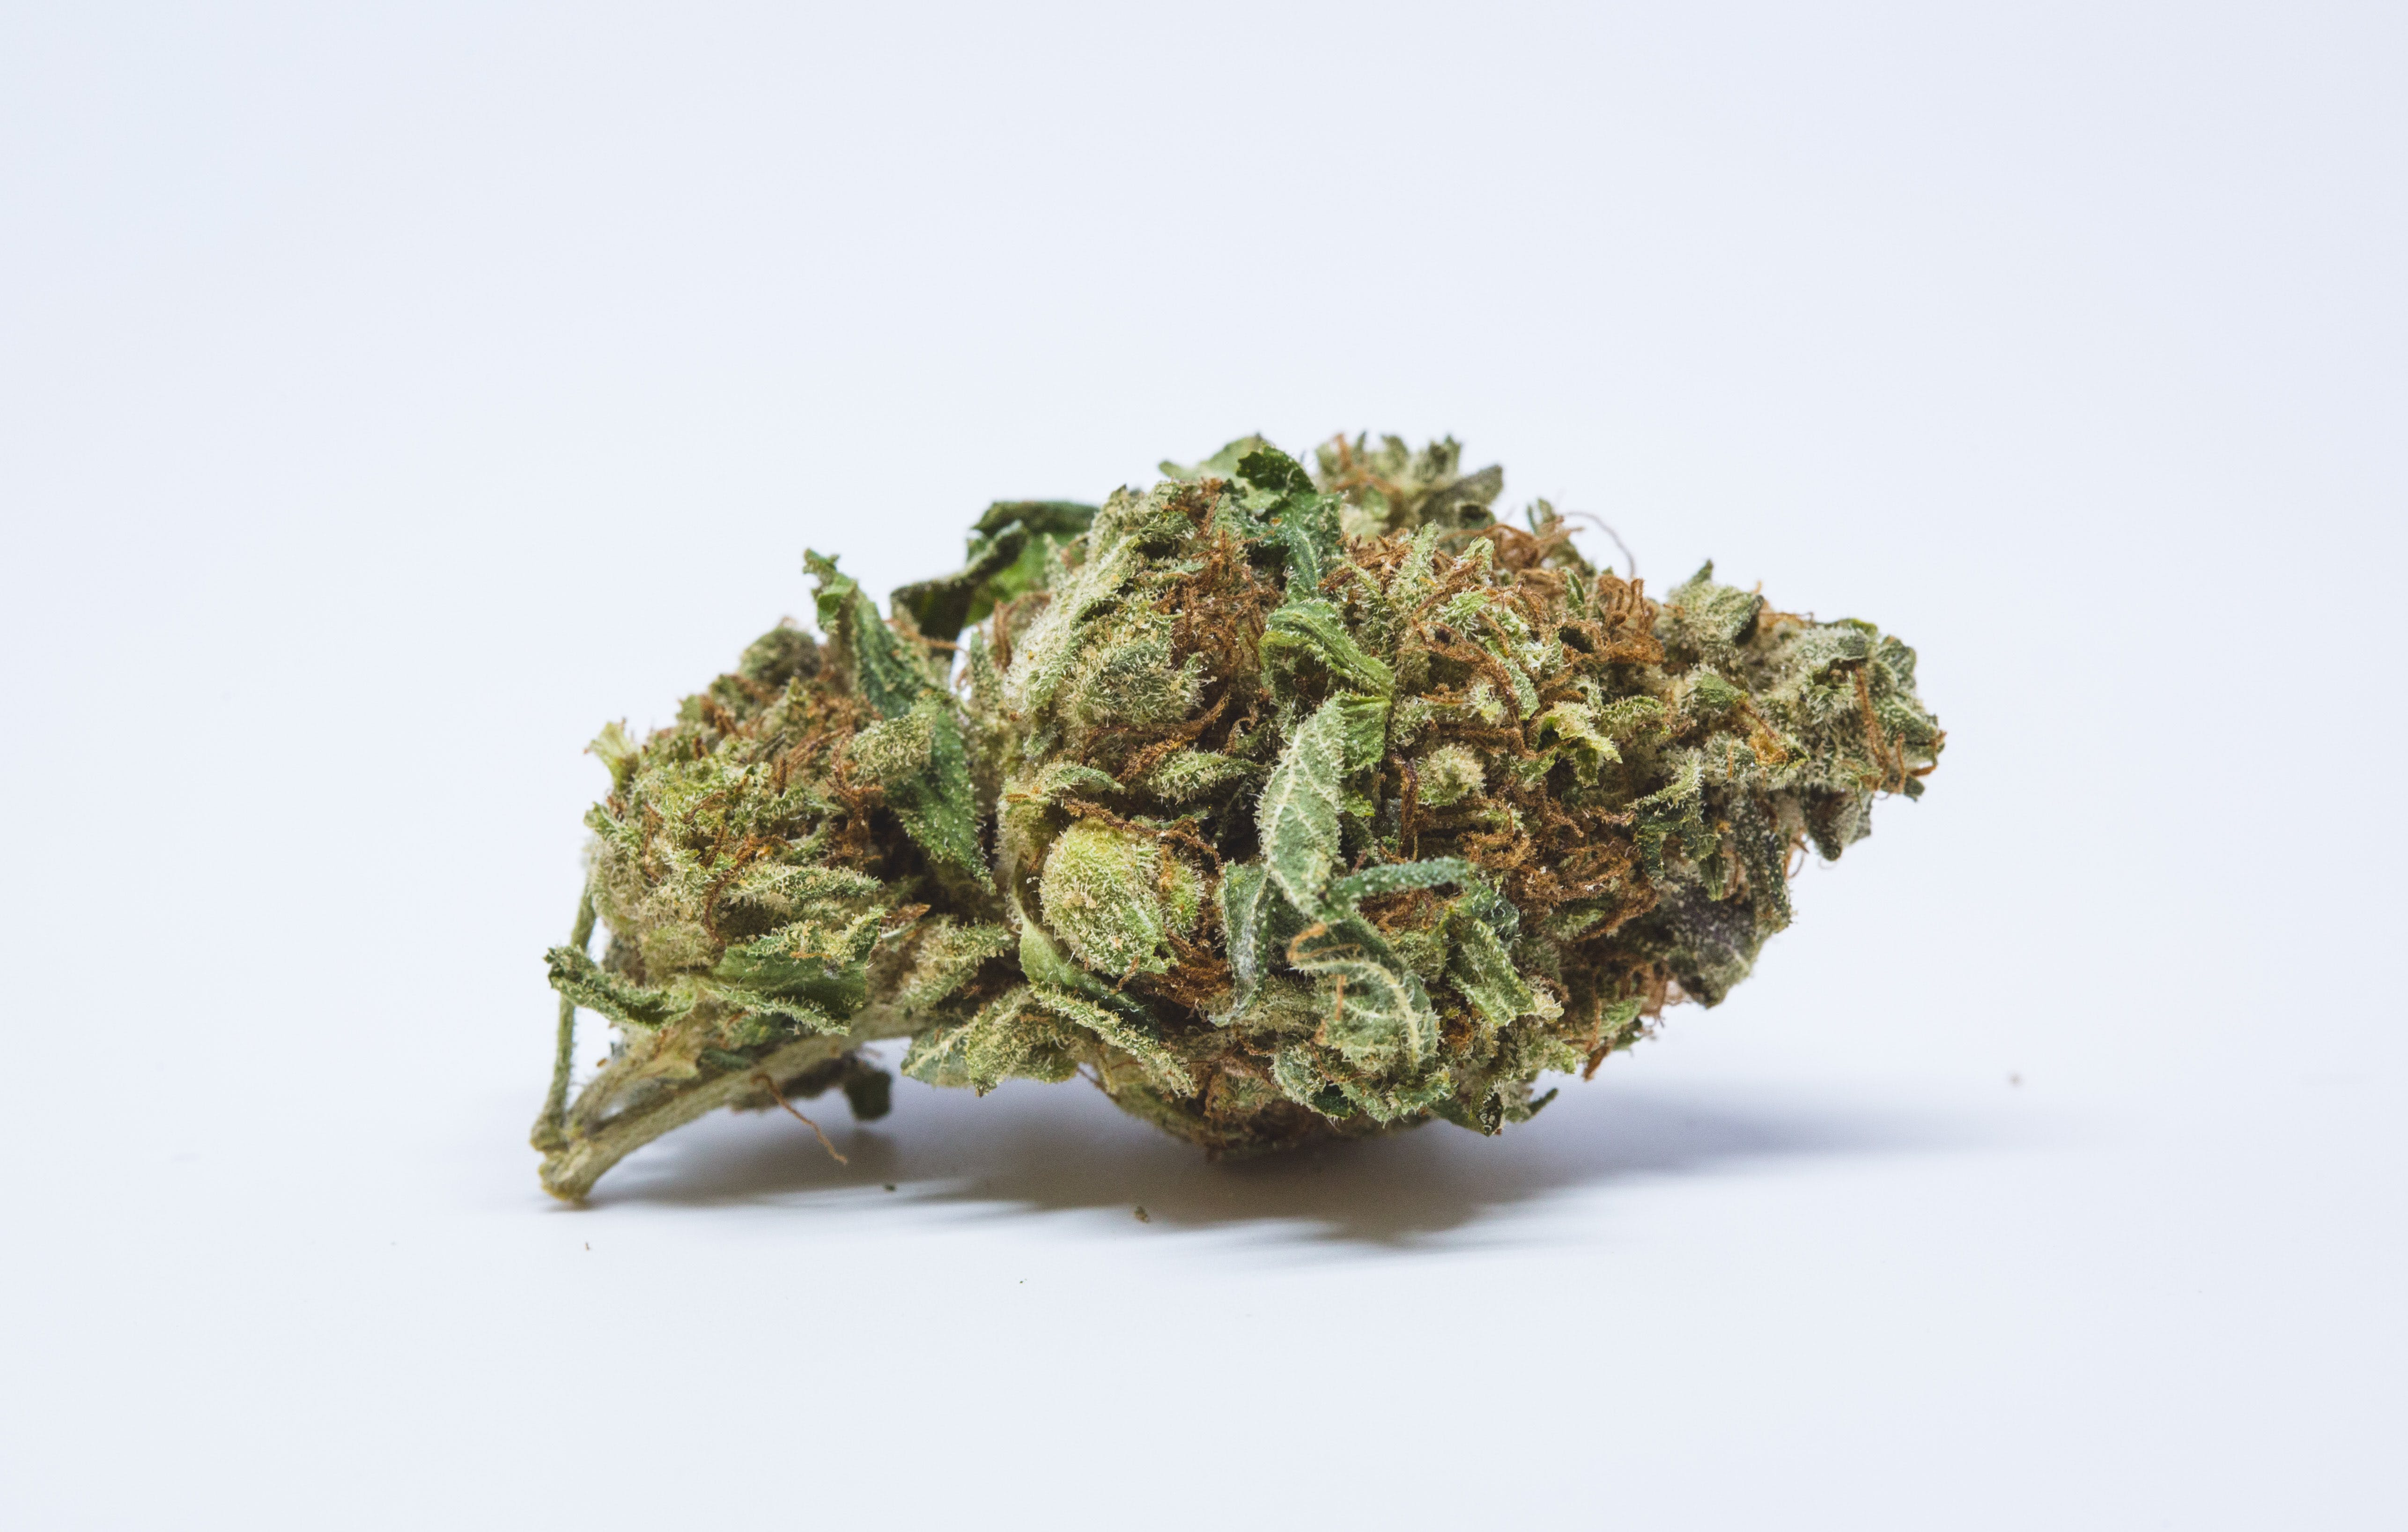 ADD strains for focus